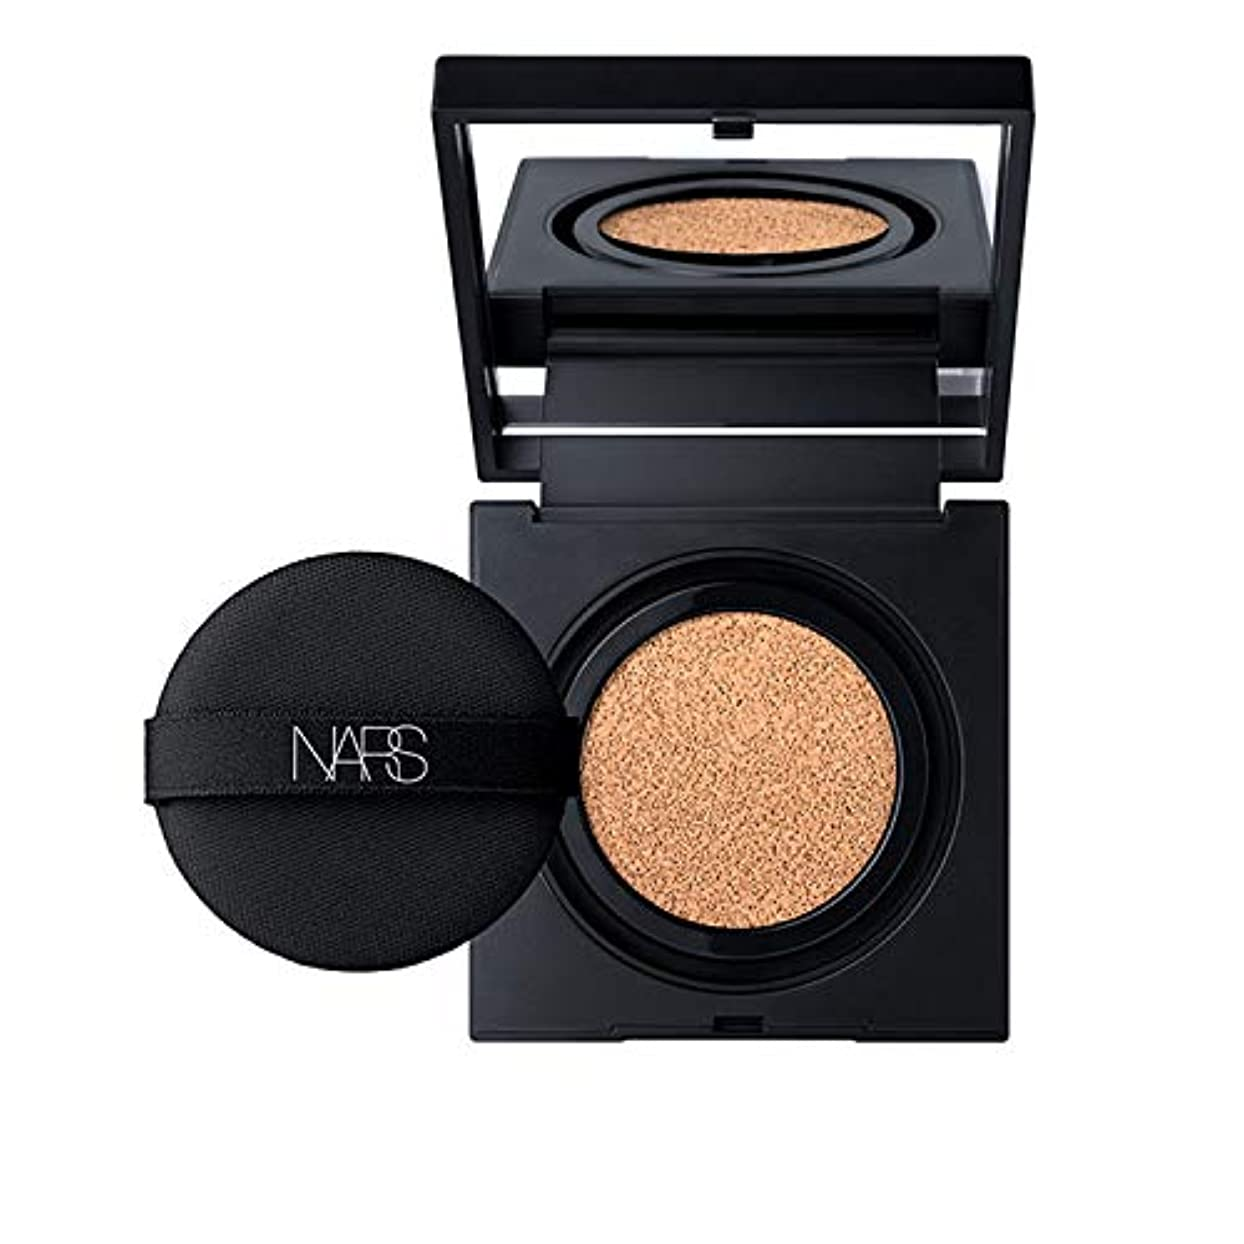 ベジタリアンアカデミー個人的なNars(ナーズ) Natural Radiant Longwear Cushion Foundation 12g # Vienna